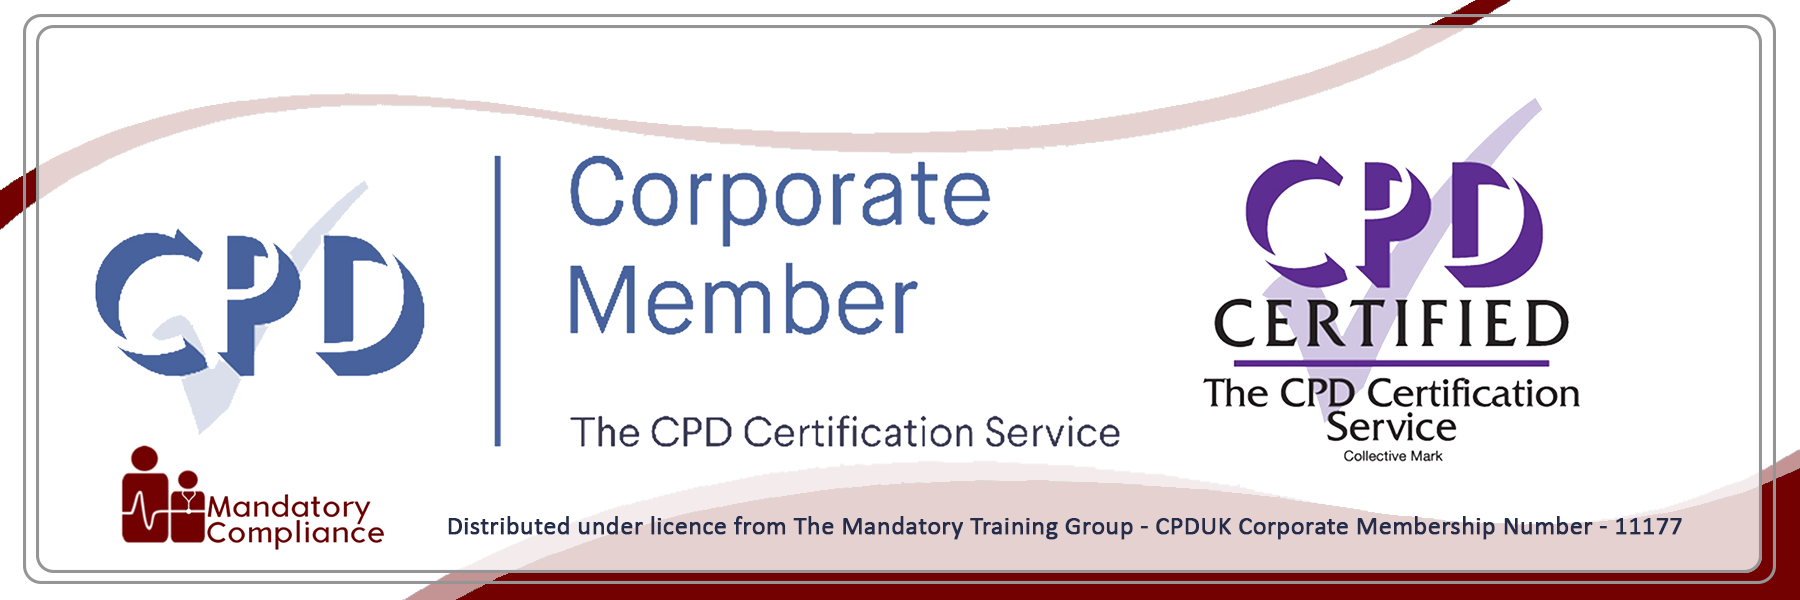 Care Certificate - 15 Standards - Online Training Course - CPD Accredited - Mandatory Compliance UK -